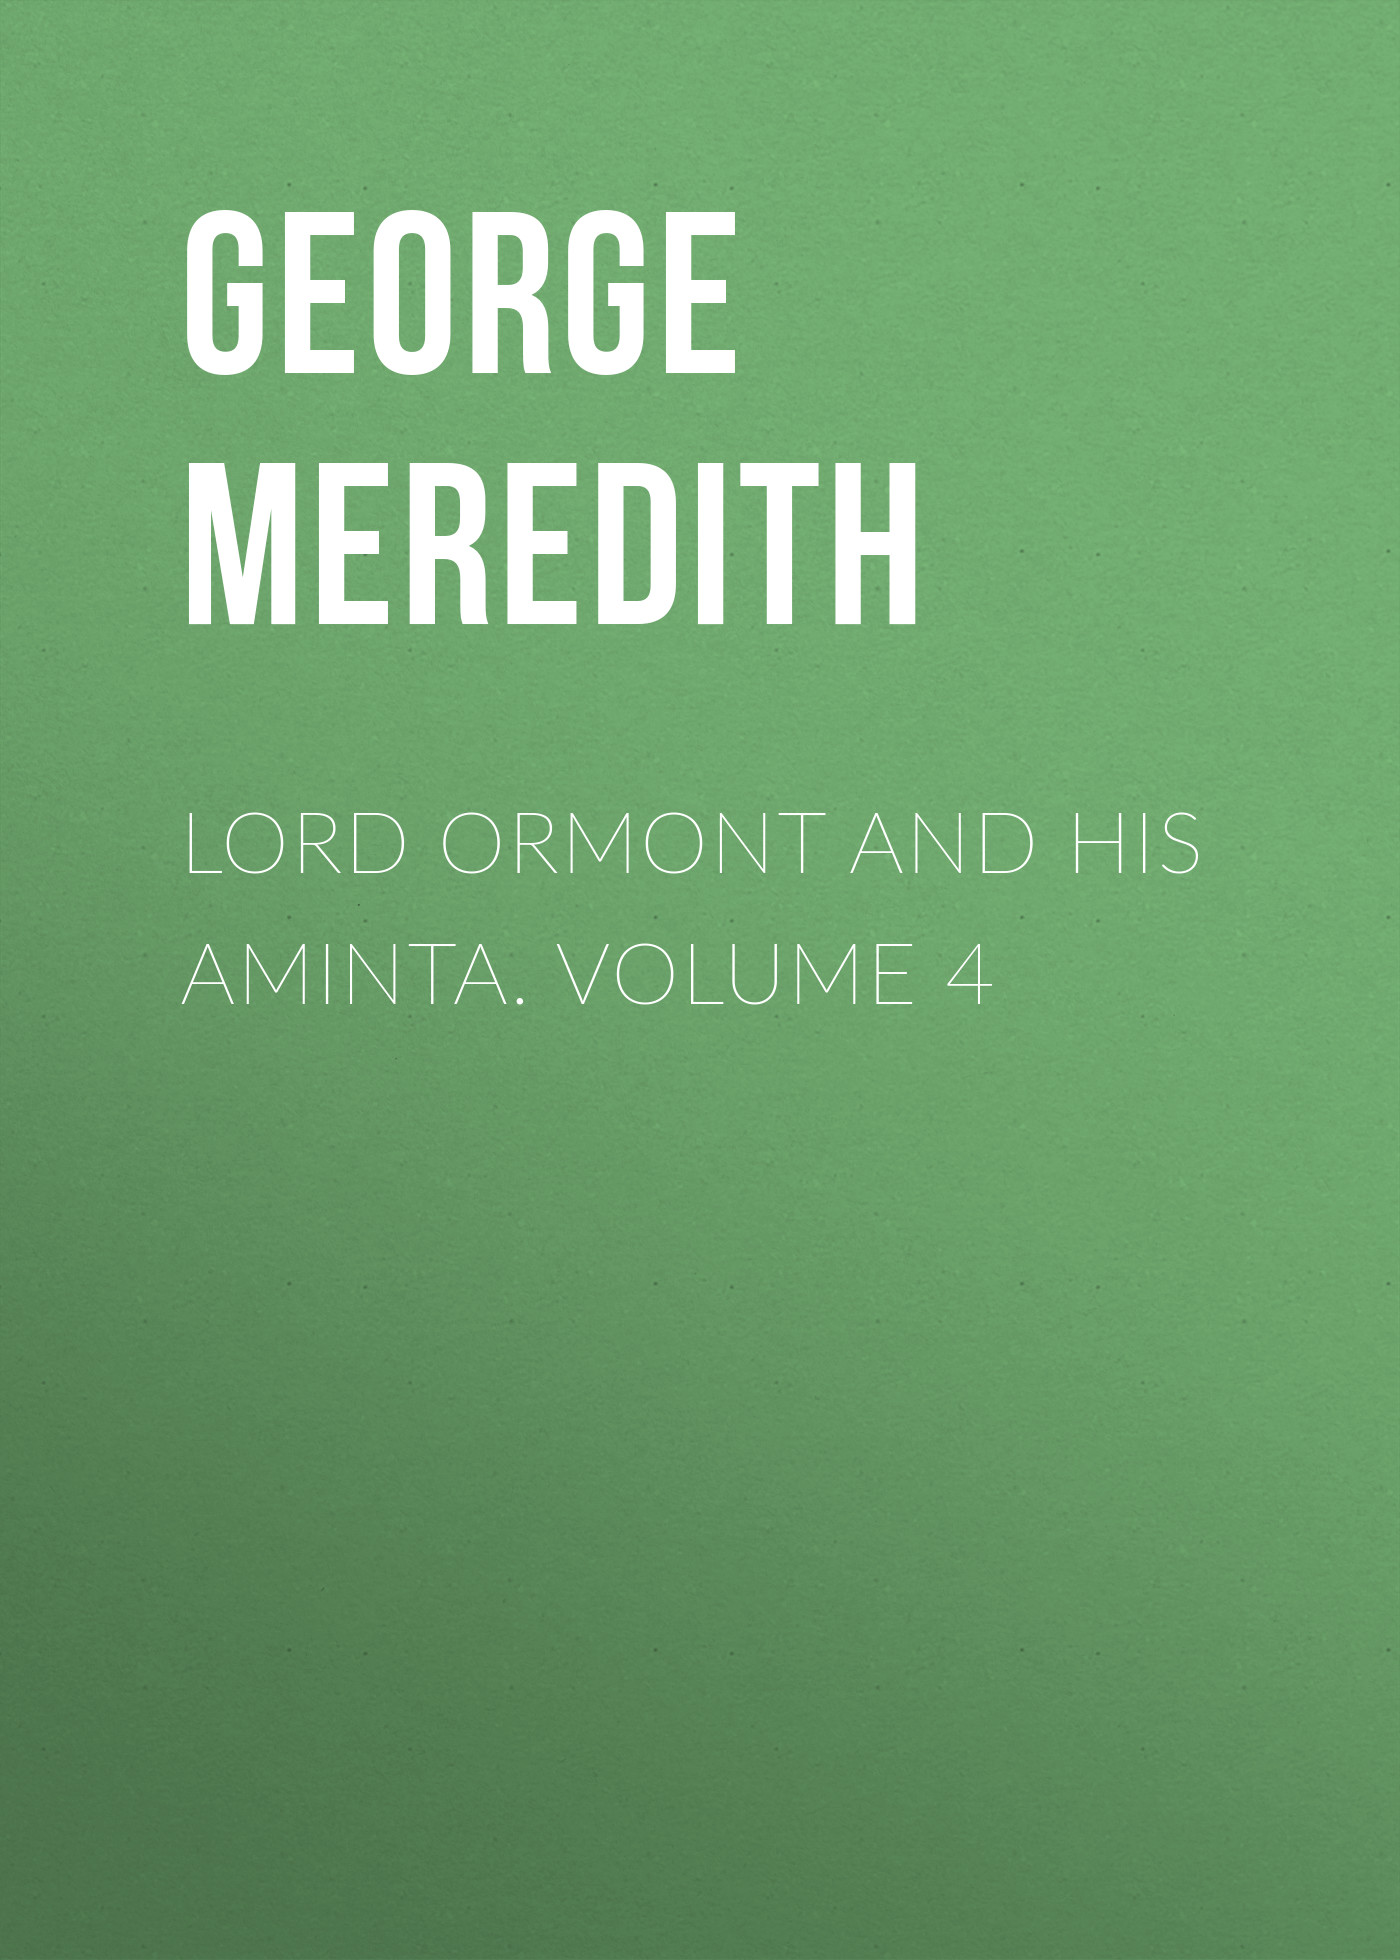 George Meredith Lord Ormont and His Aminta. Volume 4 george meredith lord ormont and his aminta volume 2